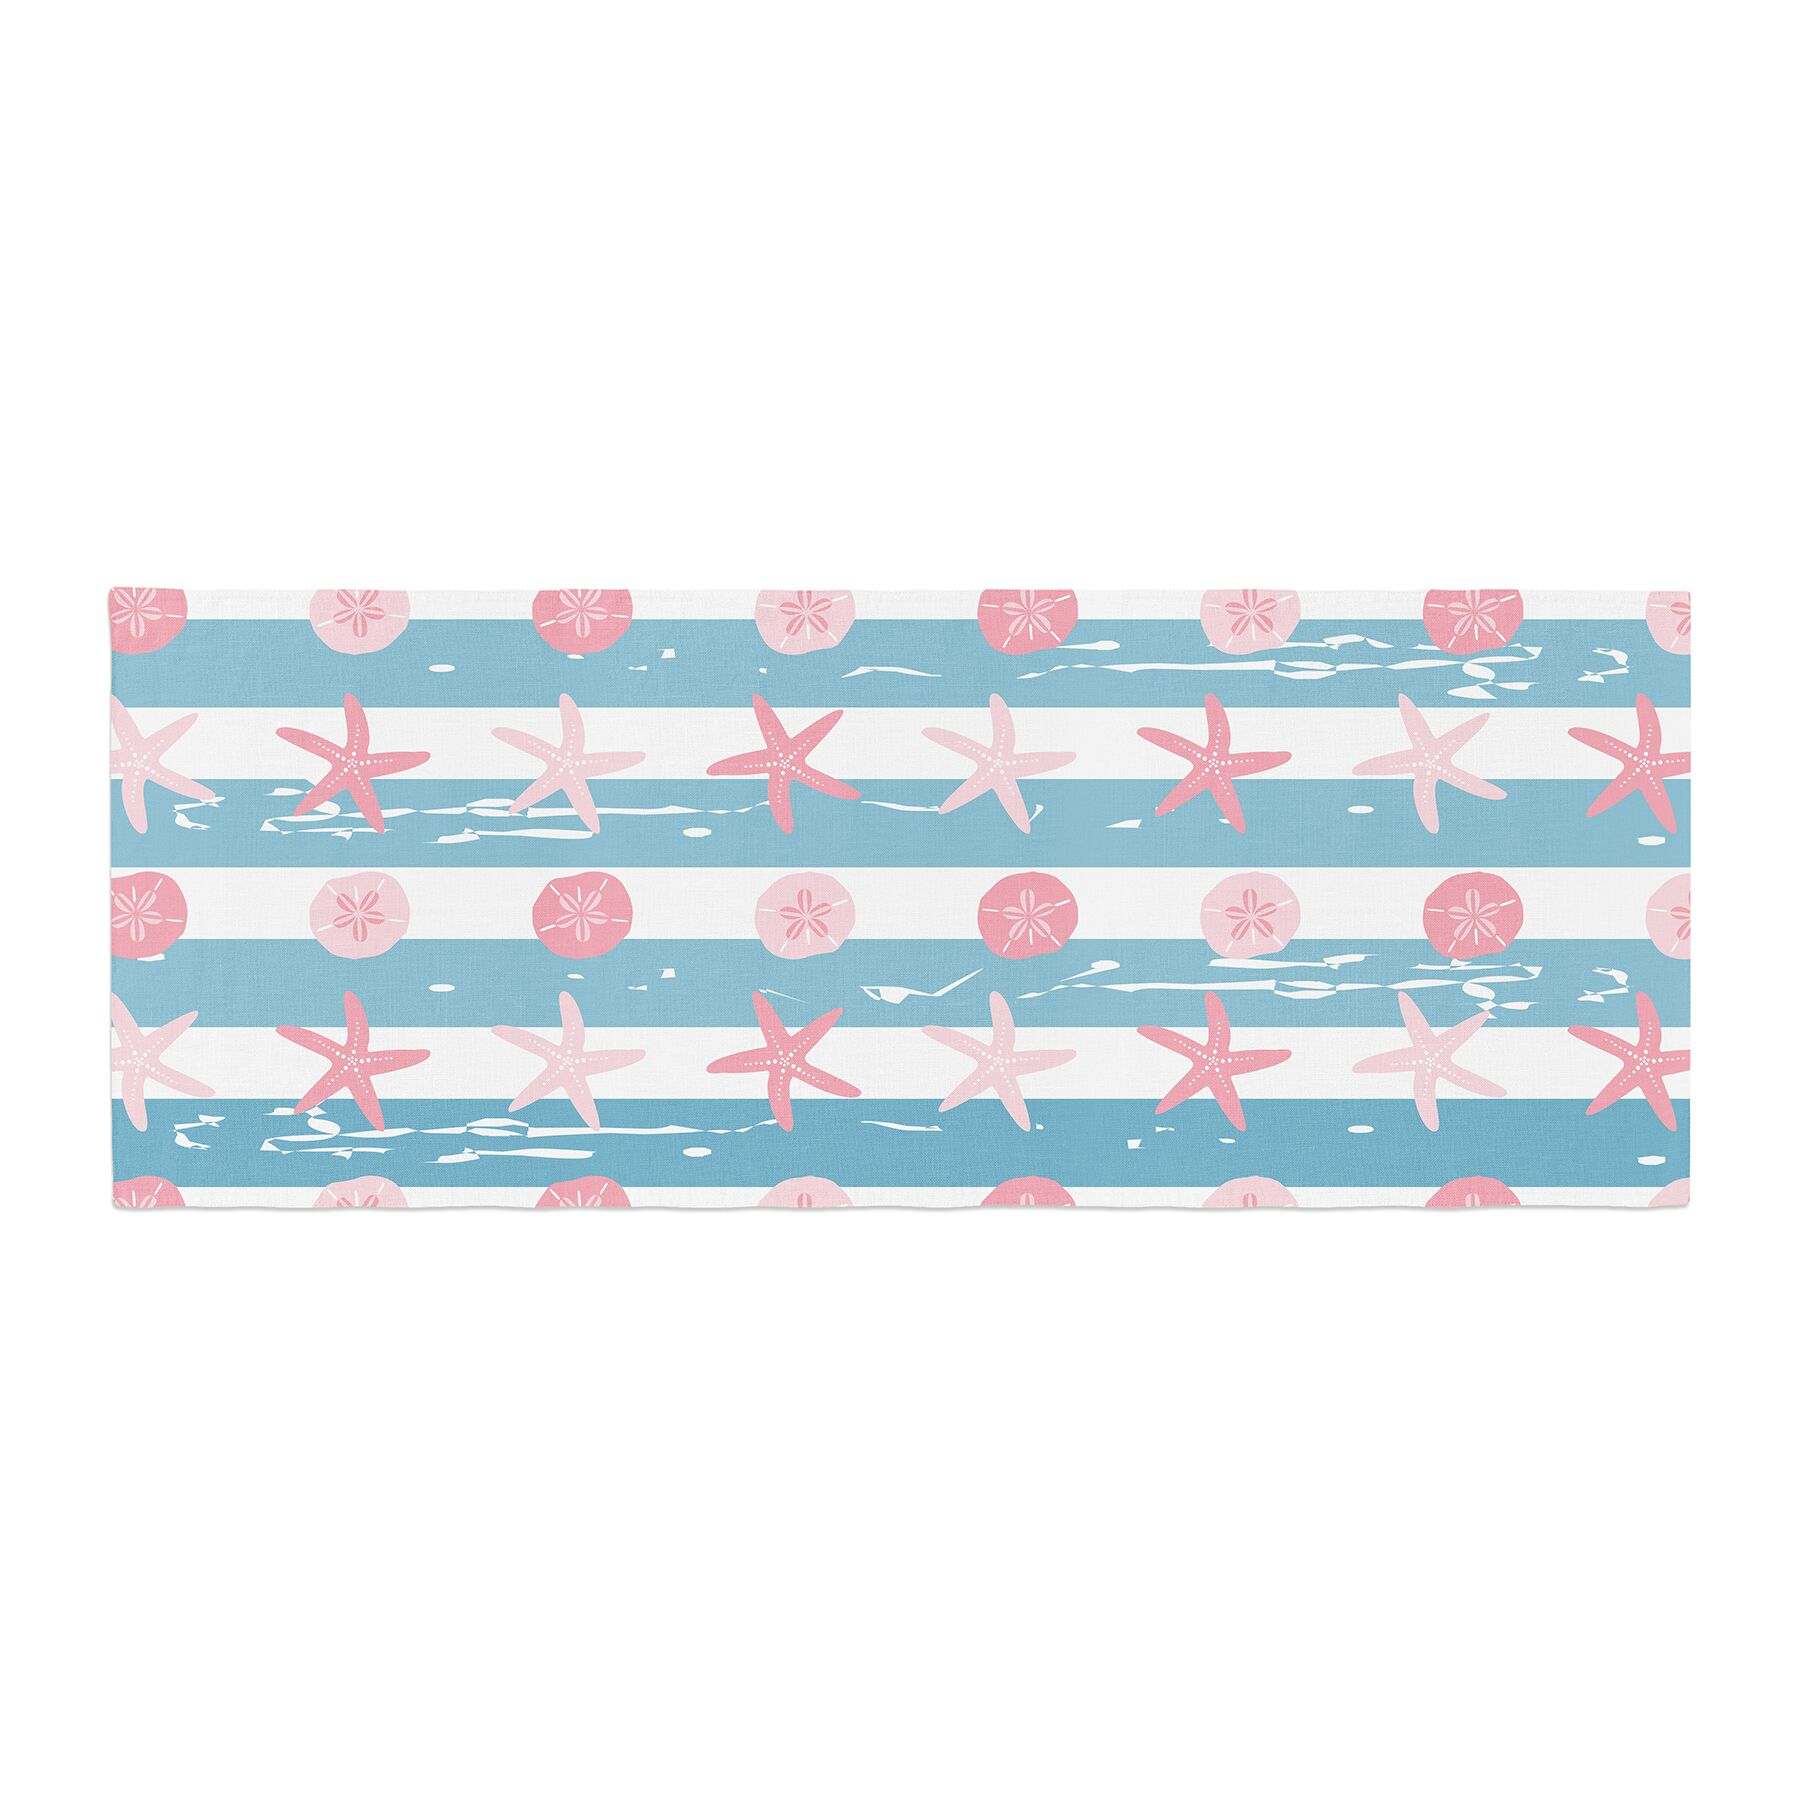 Afe Images Starfish and Sand Dollar Pattern Digital Bed Runner